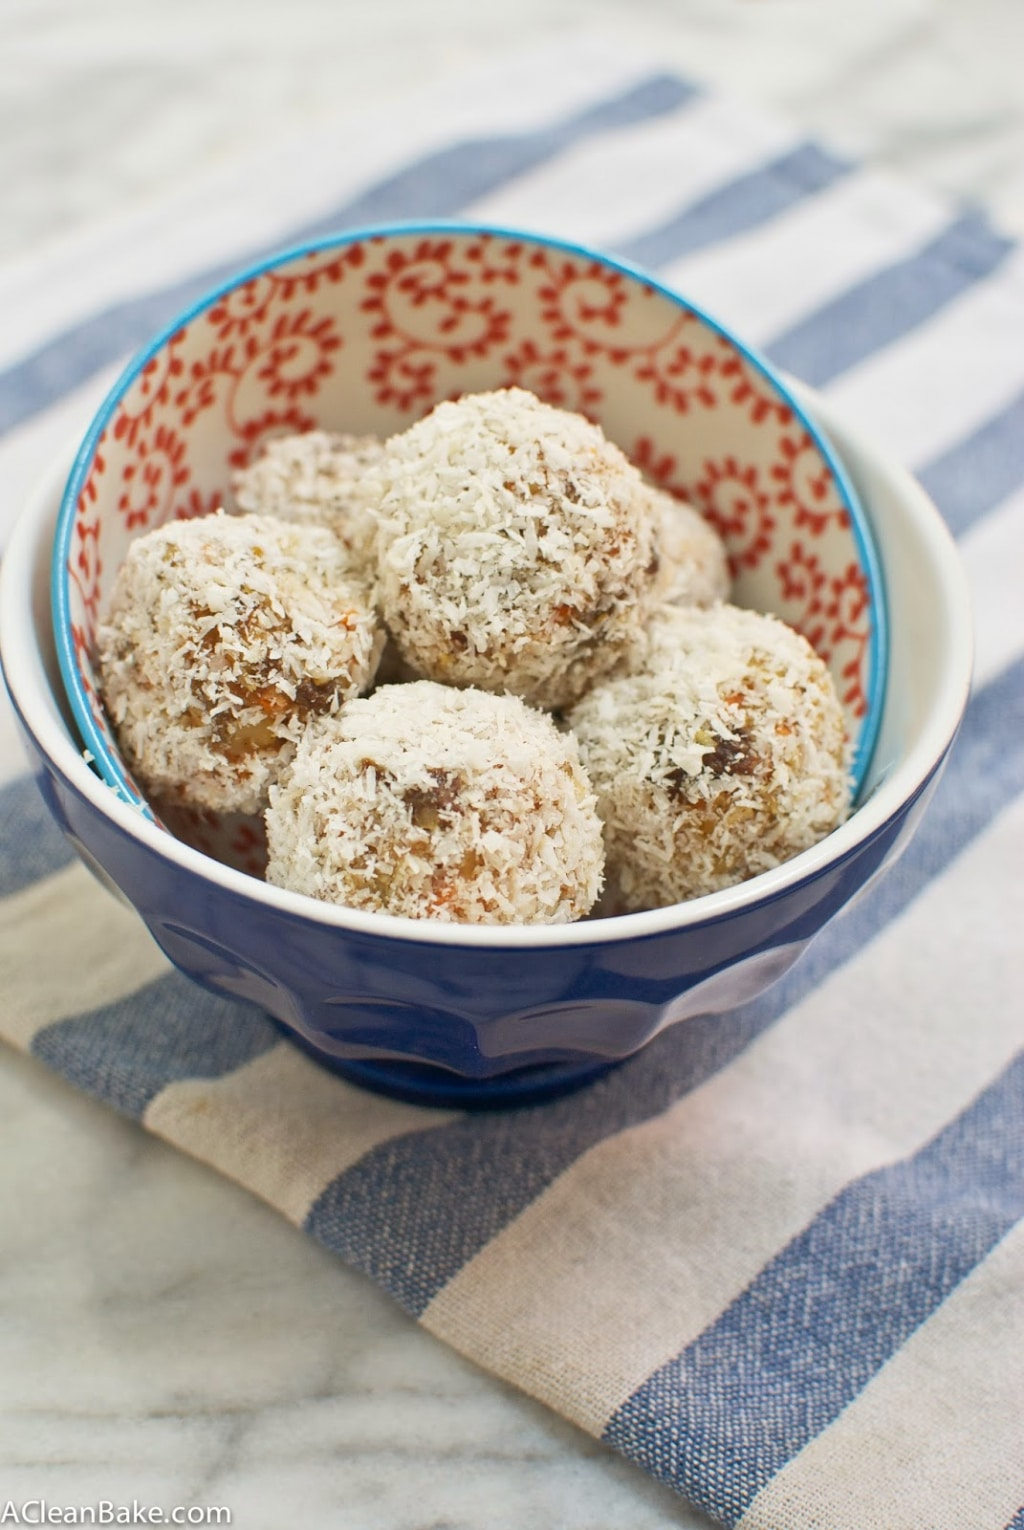 Carrot Cake Truffles (Grain Free, Gluten Free and Sugar Free)